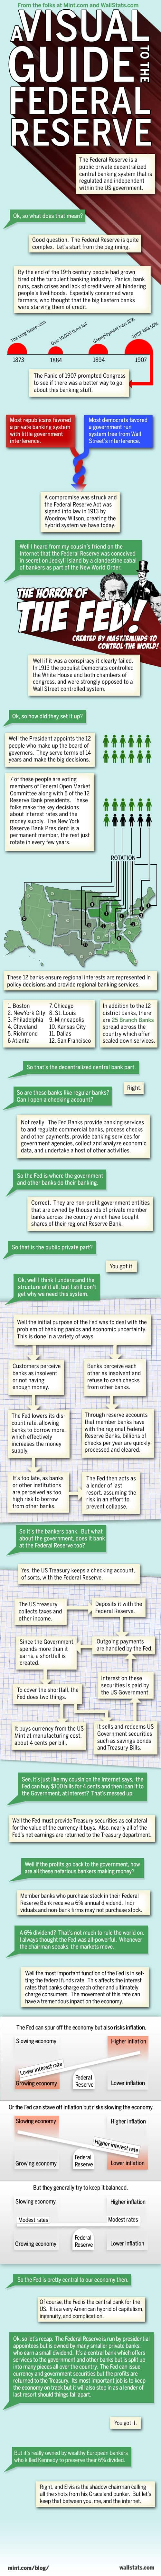 How The Federal Reserve System Really Works [Infographic]